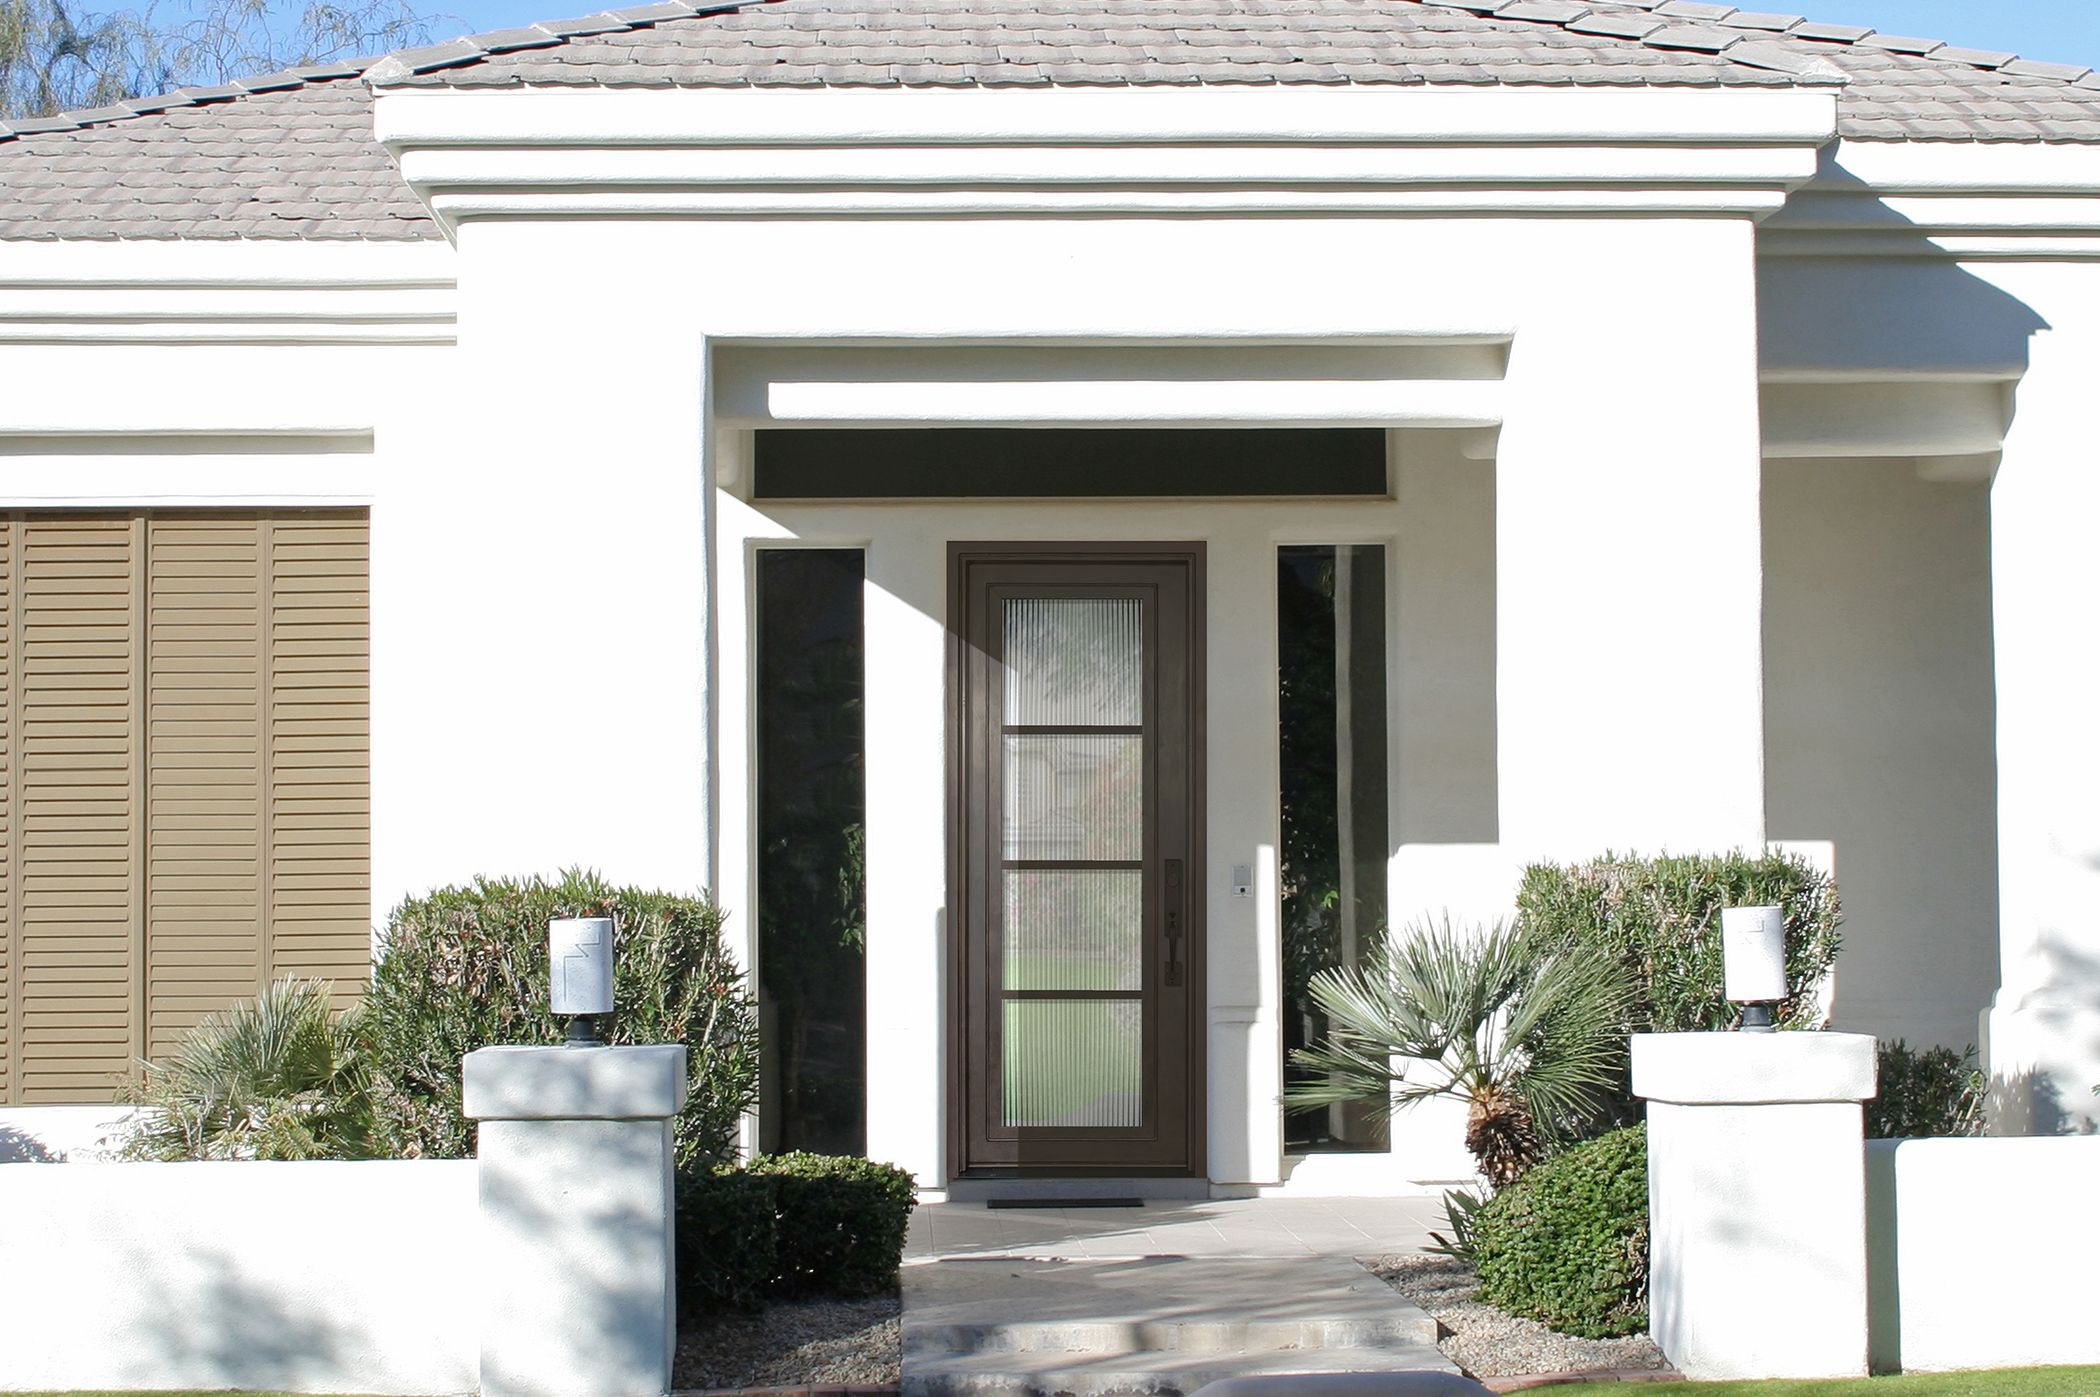 GlassCraft's new WP steel door design on a contemporary home exterior.